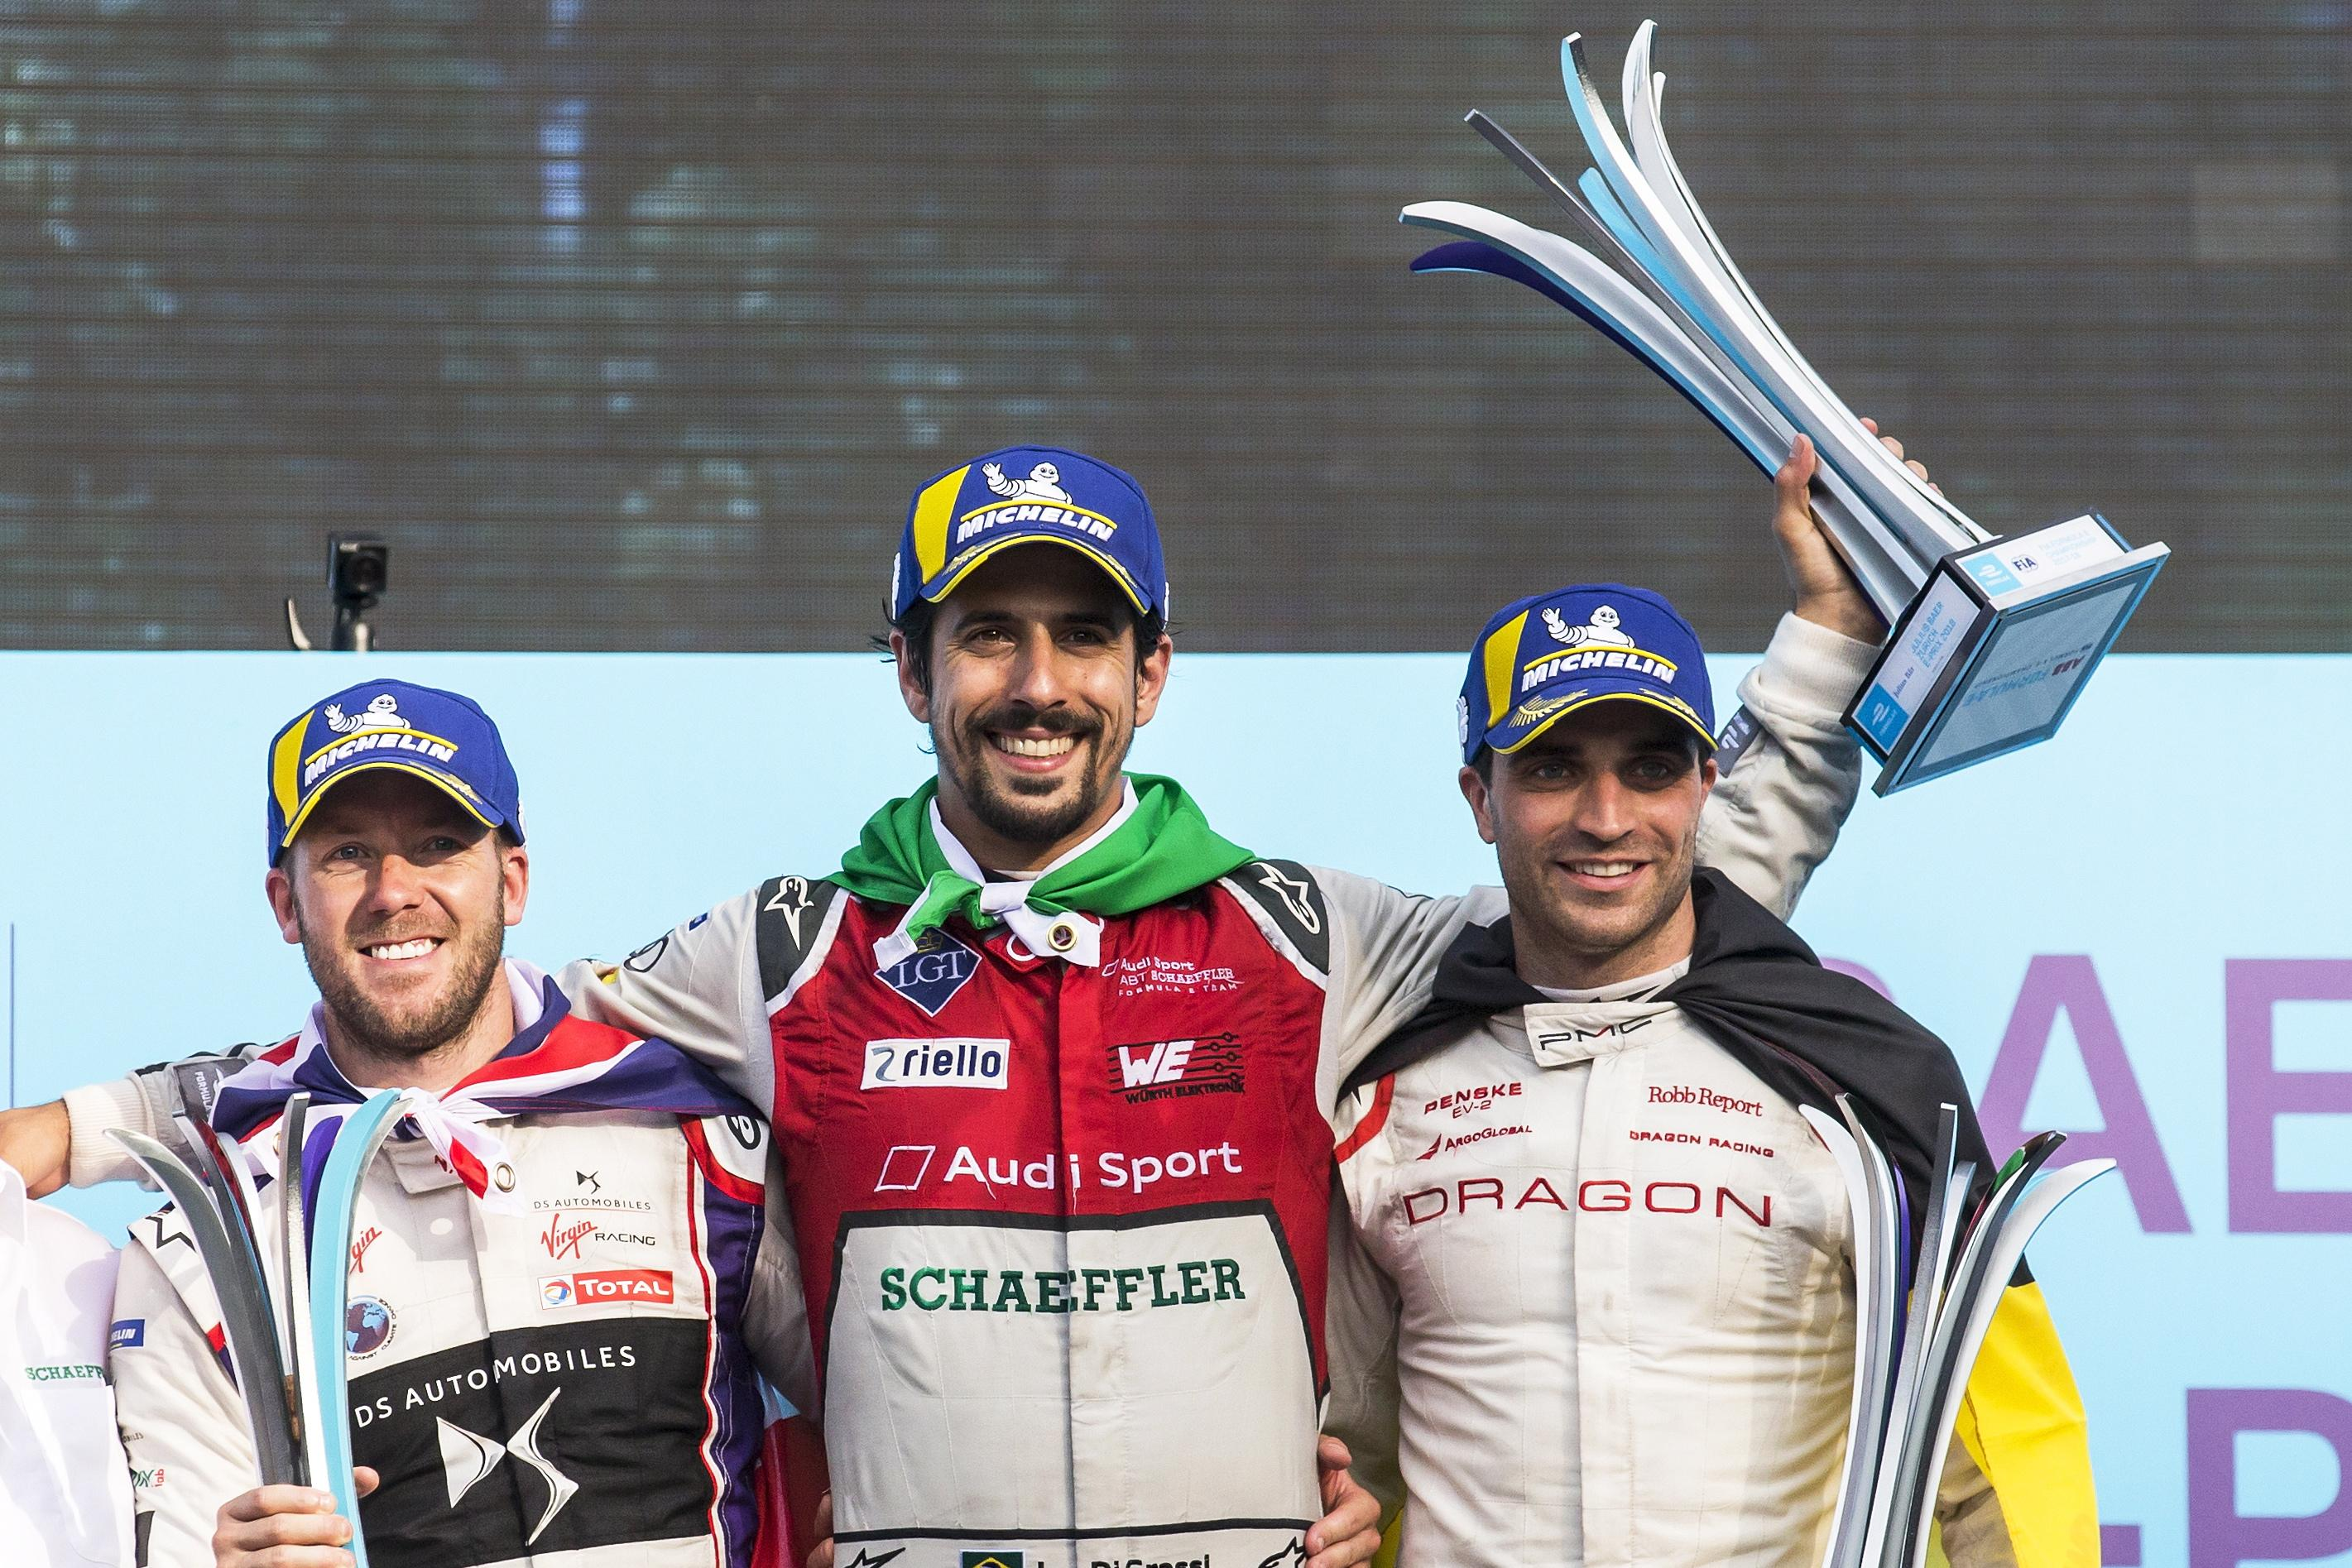 Sam Bird (left) finished second on the podium alongside Lucas Di Grassi (middle) and Jerome d'Ambrosio (right)